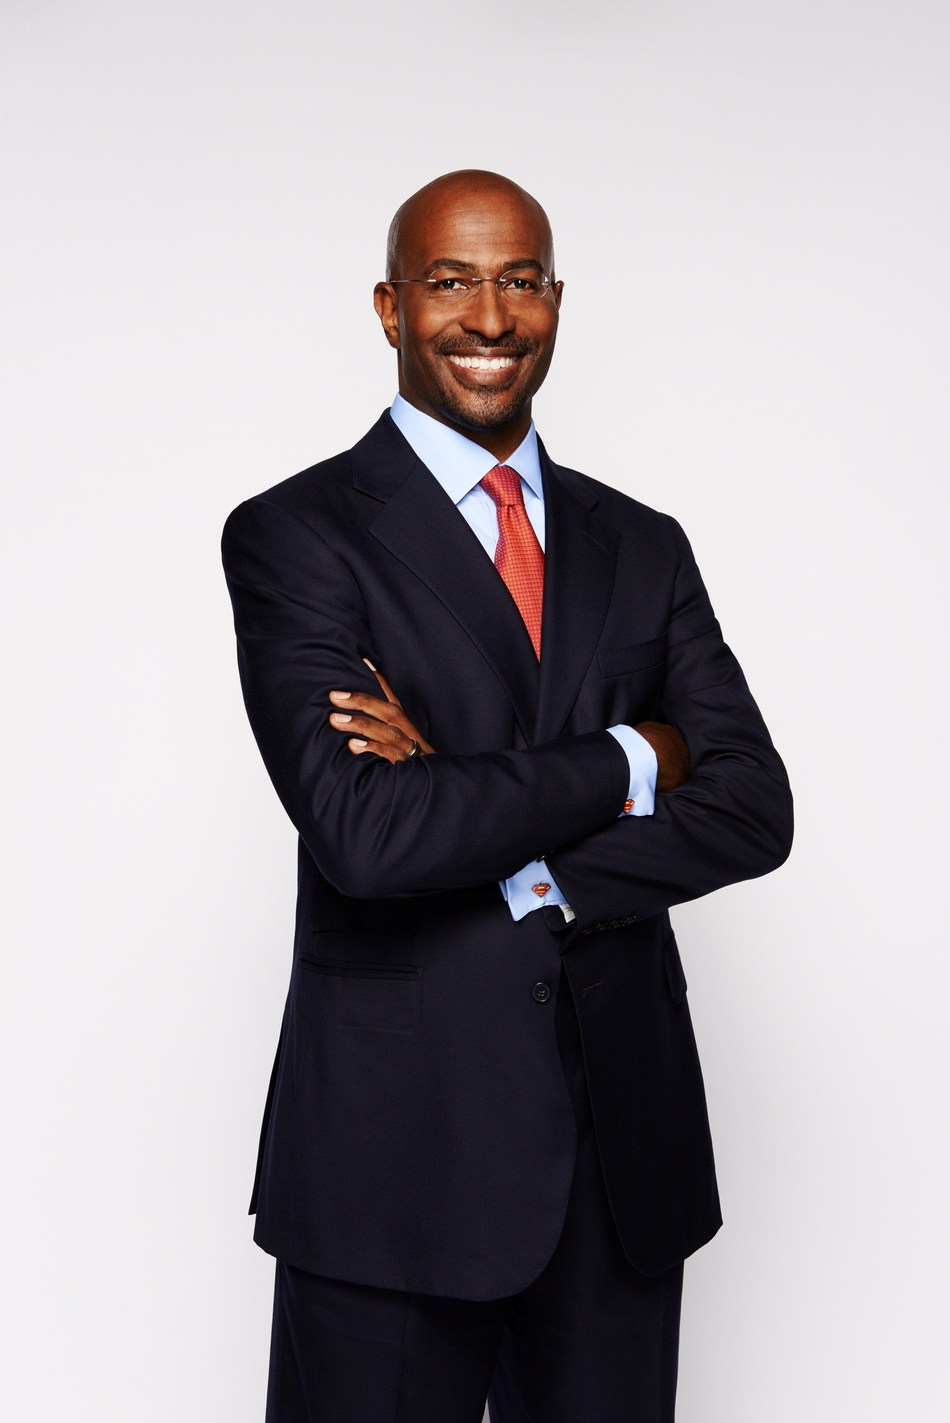 Van Jones, 2018 Voice Arts Awards, Muhammad Ali Voice of Humanity Honor recipient. 5th Annual Voice Arts Awards will be held November 18, 2018 at Warner Bros. Studios in Burbank.